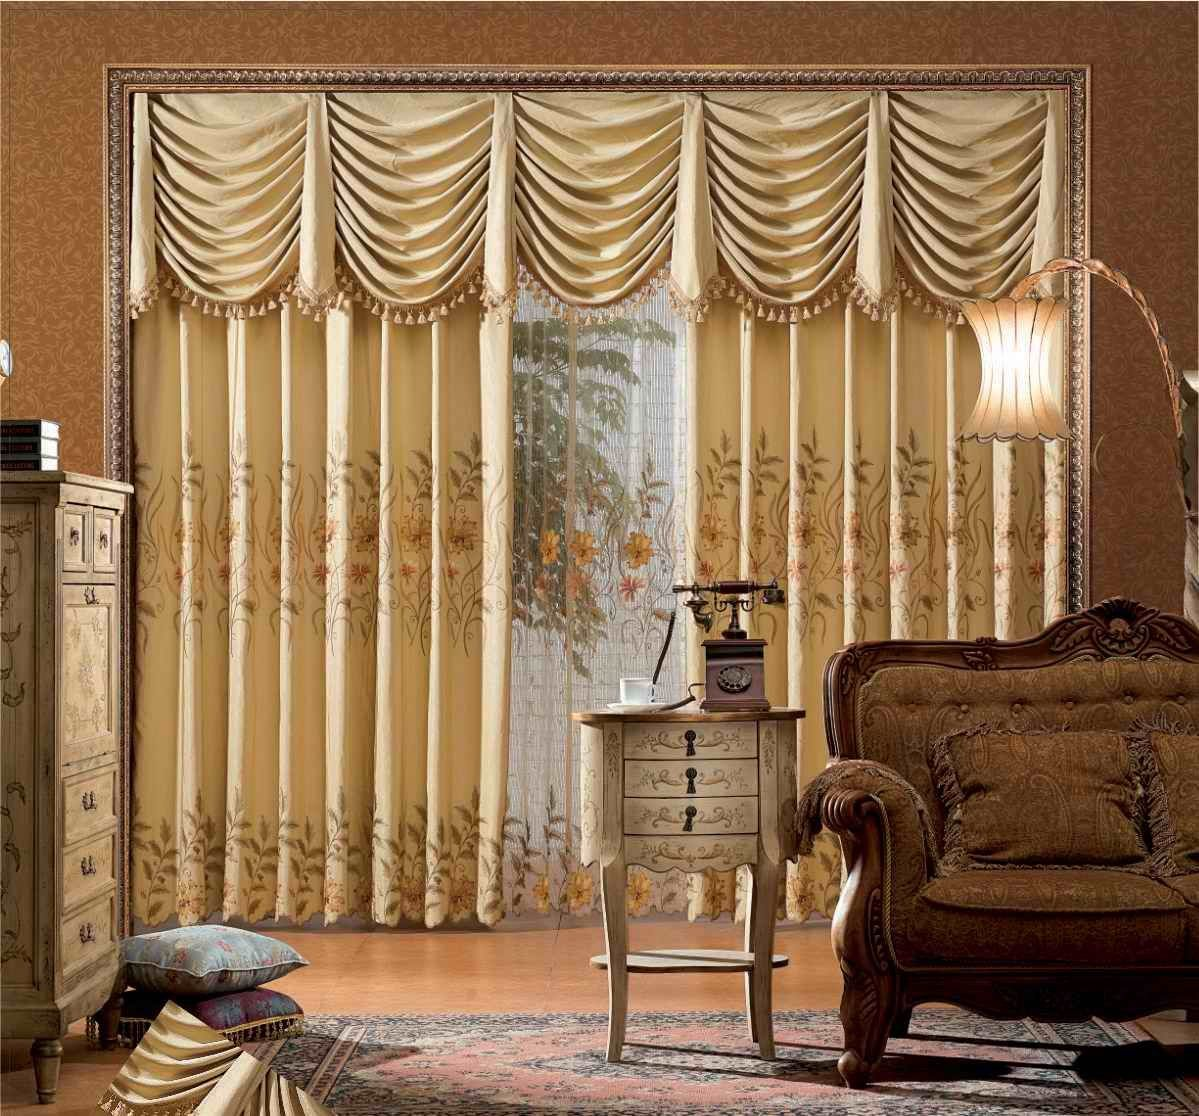 Living Room Curtains Design Captivating Make Modern Living Room Curtains  Httphighlifestylewp Design Ideas